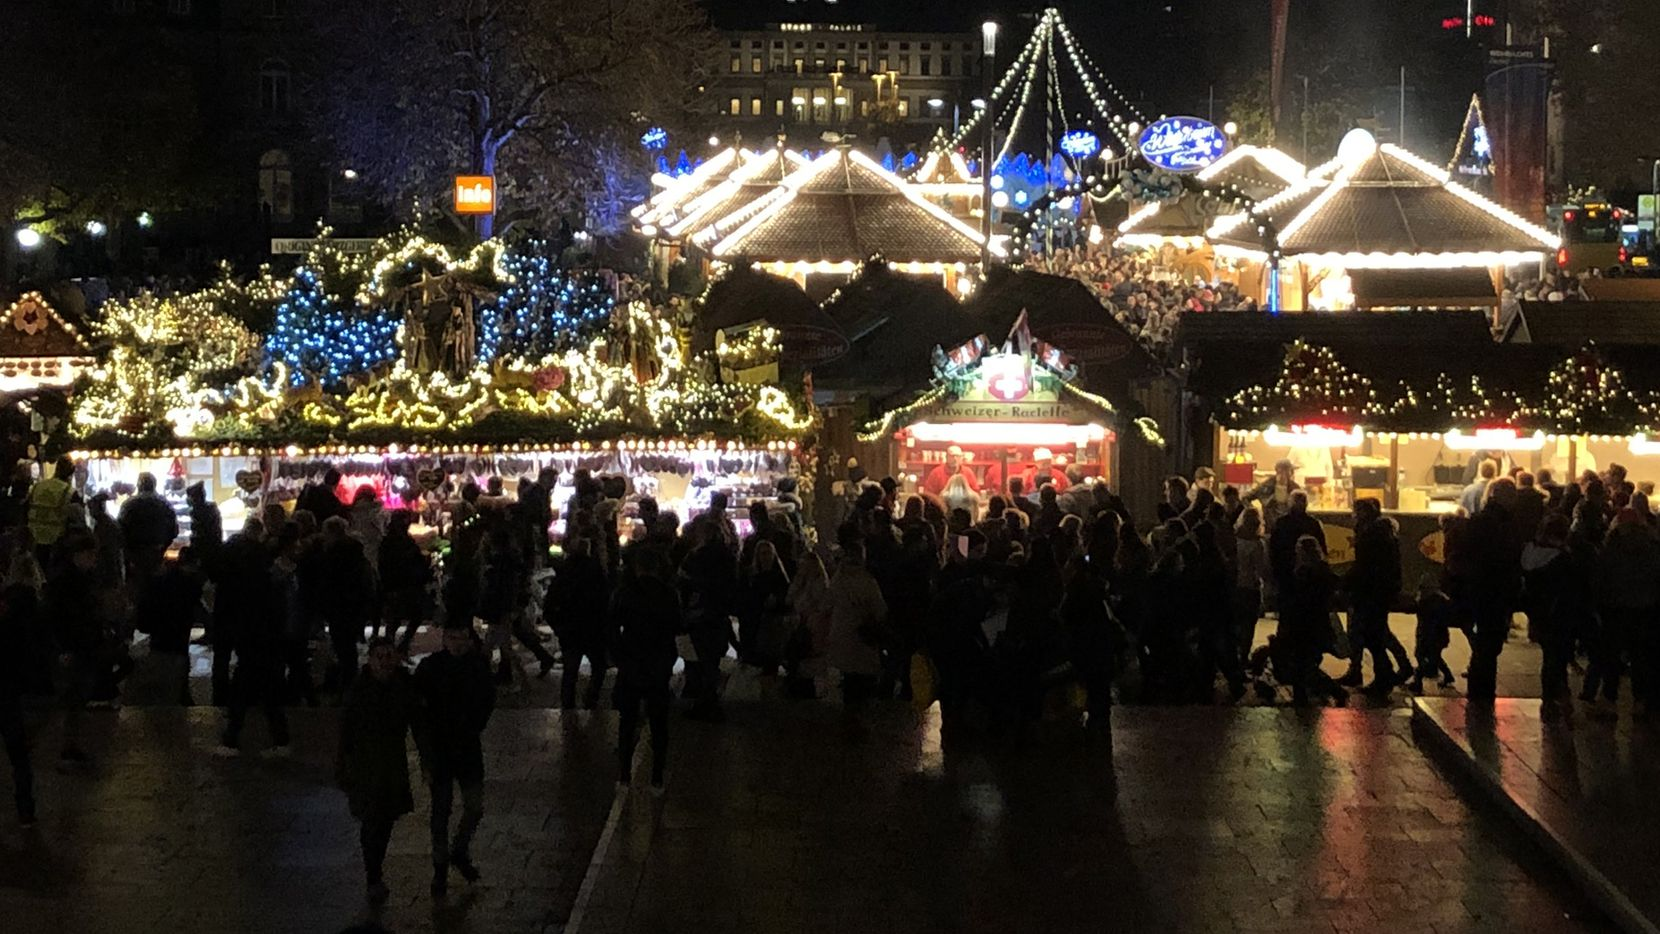 The Christmas market in Stuttgart attracts around 3.6 million visitors annually, making it among the largest in Germany.